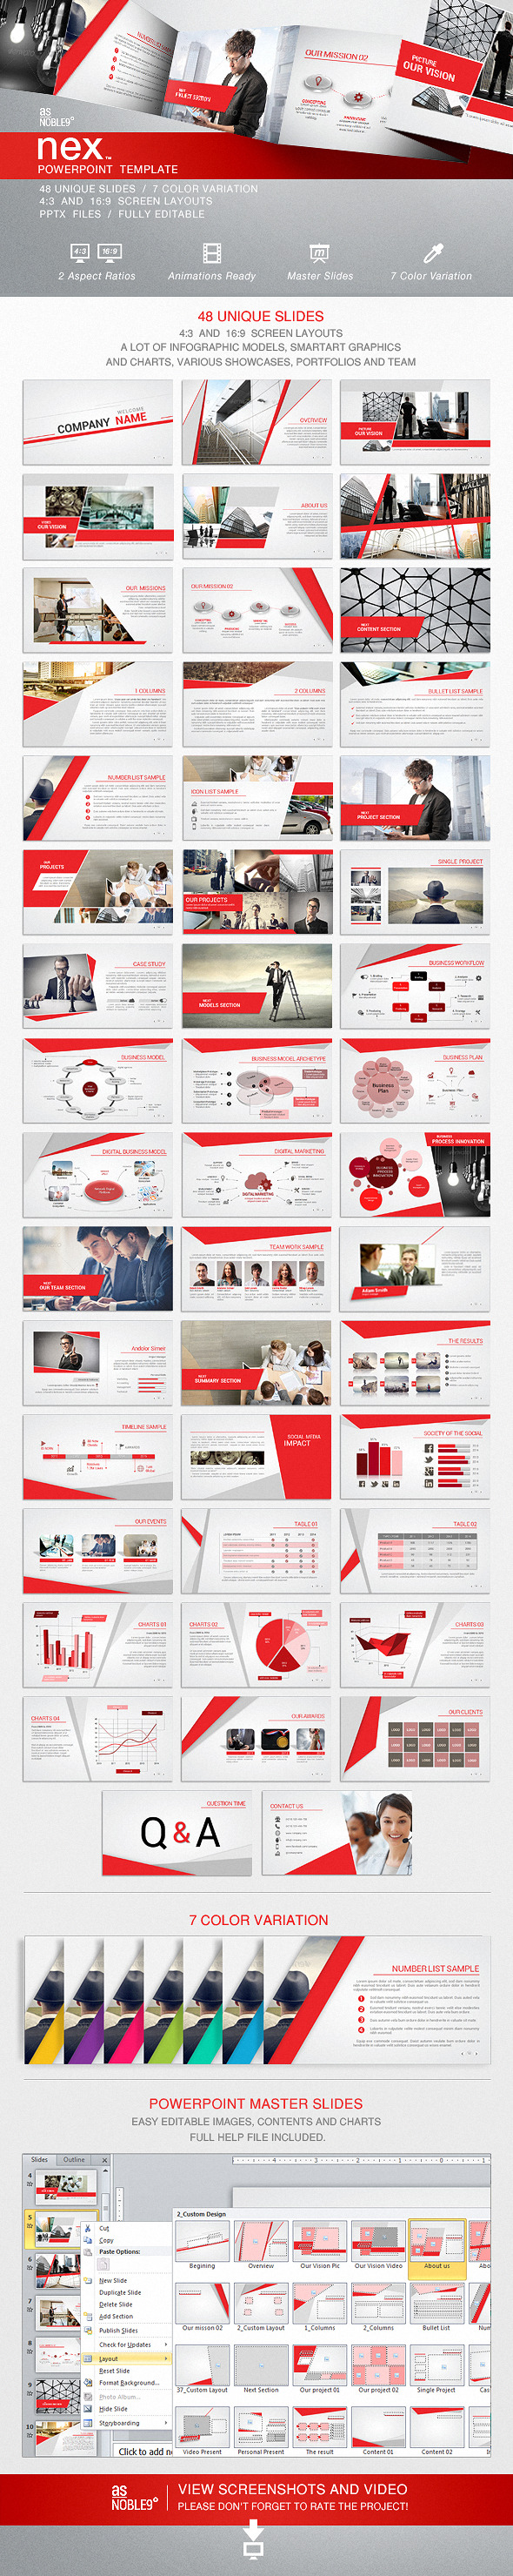 NEX PowerPoint Template